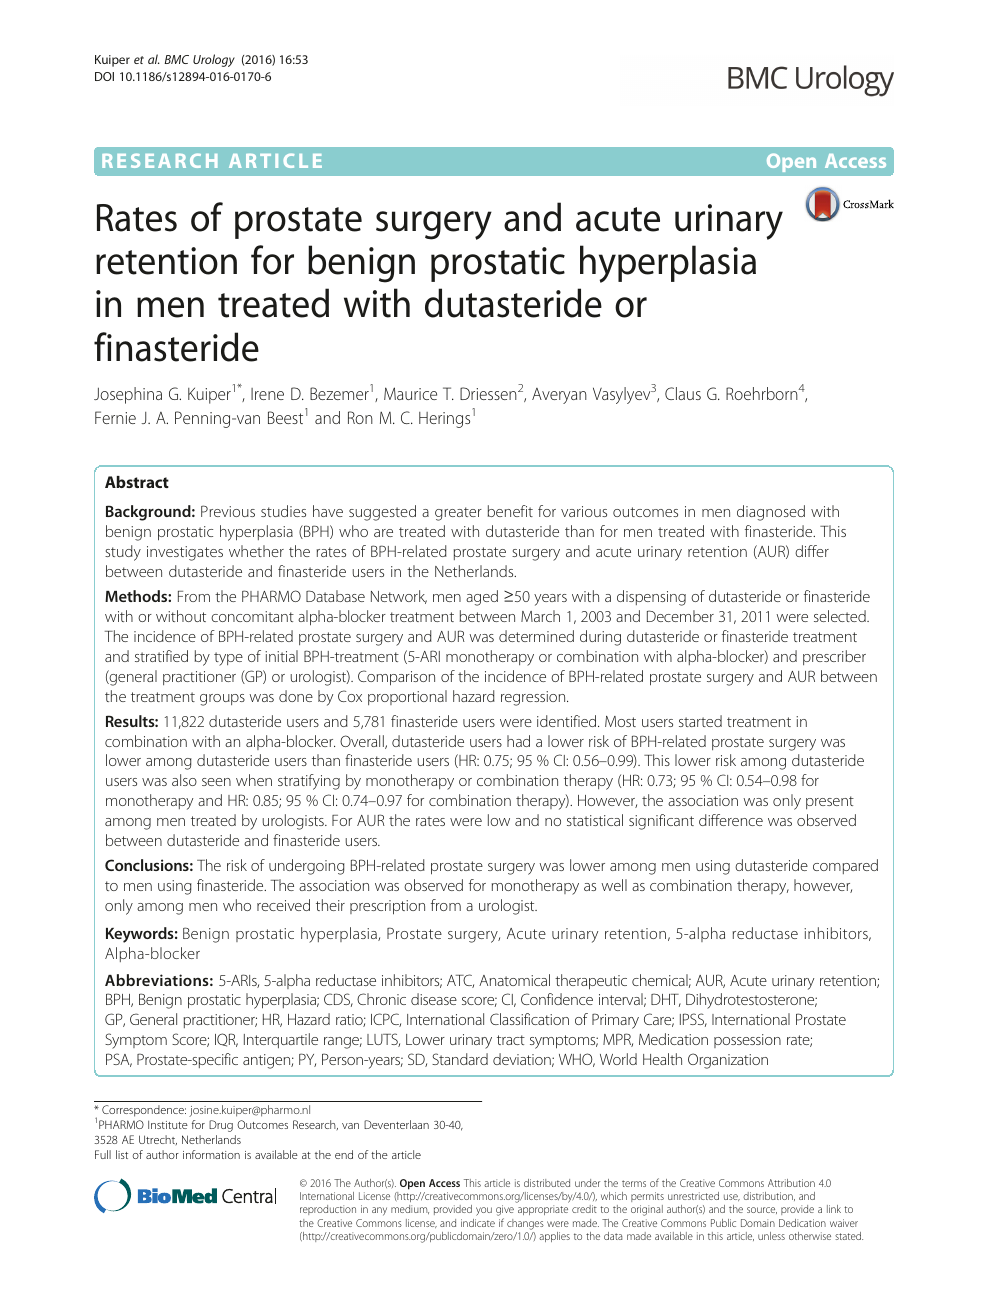 Rates Of Prostate Surgery And Acute Urinary Retention For Benign Prostatic Hyperplasia In Men Treated With Dutasteride Or Finasteride Topic Of Research Paper In Clinical Medicine Download Scholarly Article Pdf And